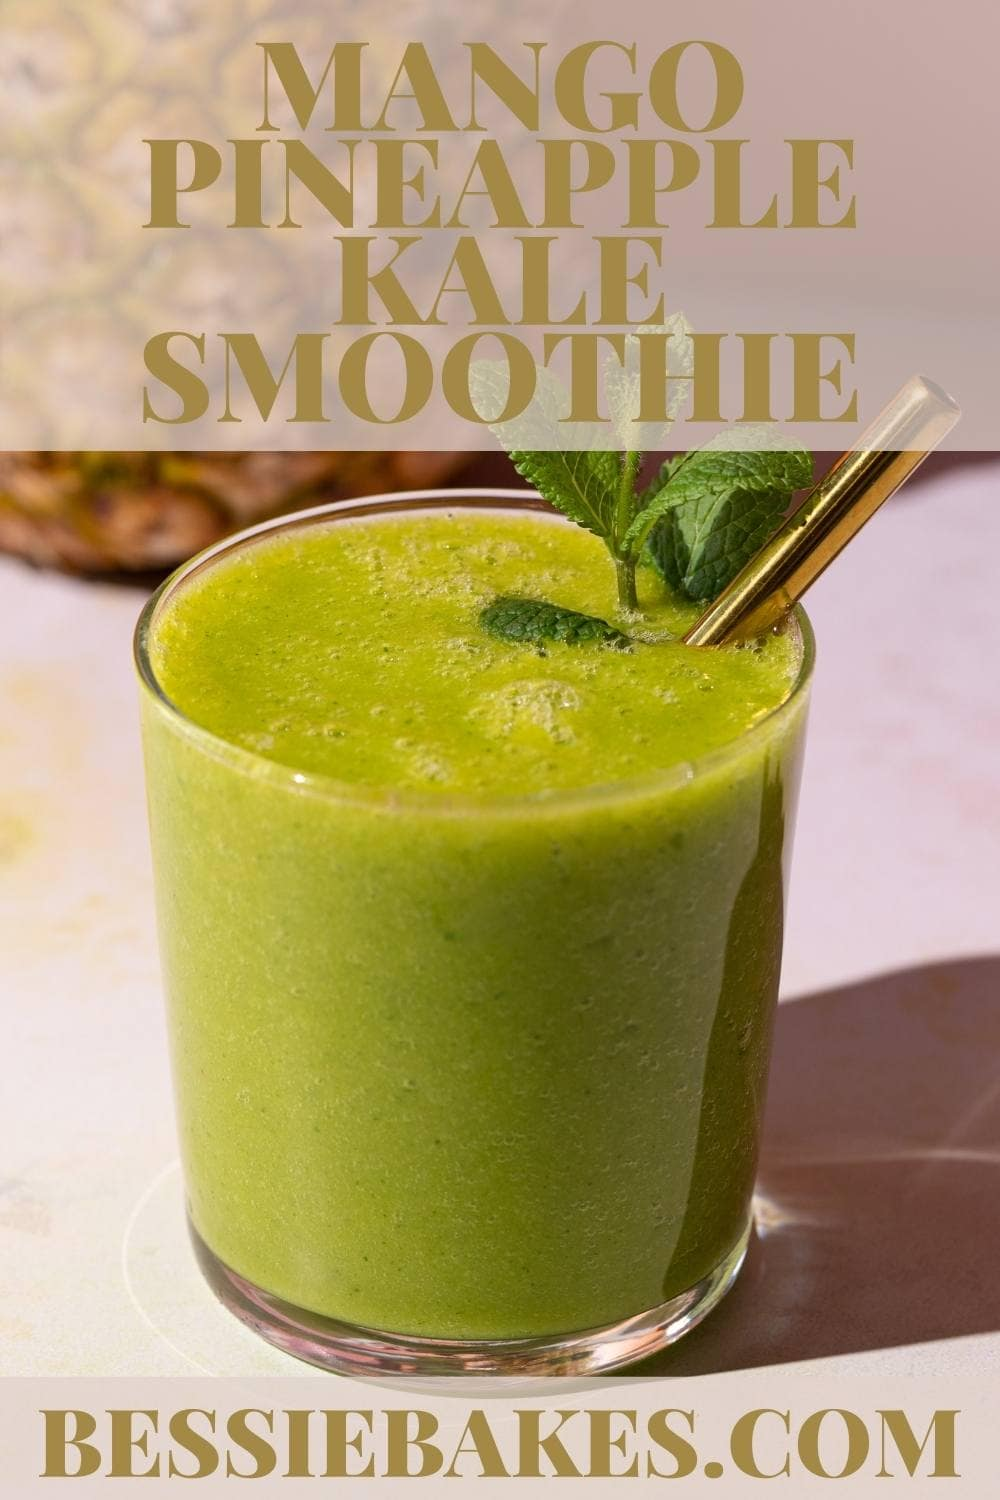 Looking for a good morning boost? This smoothie packs a flavorful punch that has the added benefit of being incredibly refreshing with some ginger, a few sprigs of mint, and pineapple core. via @bessiebakes